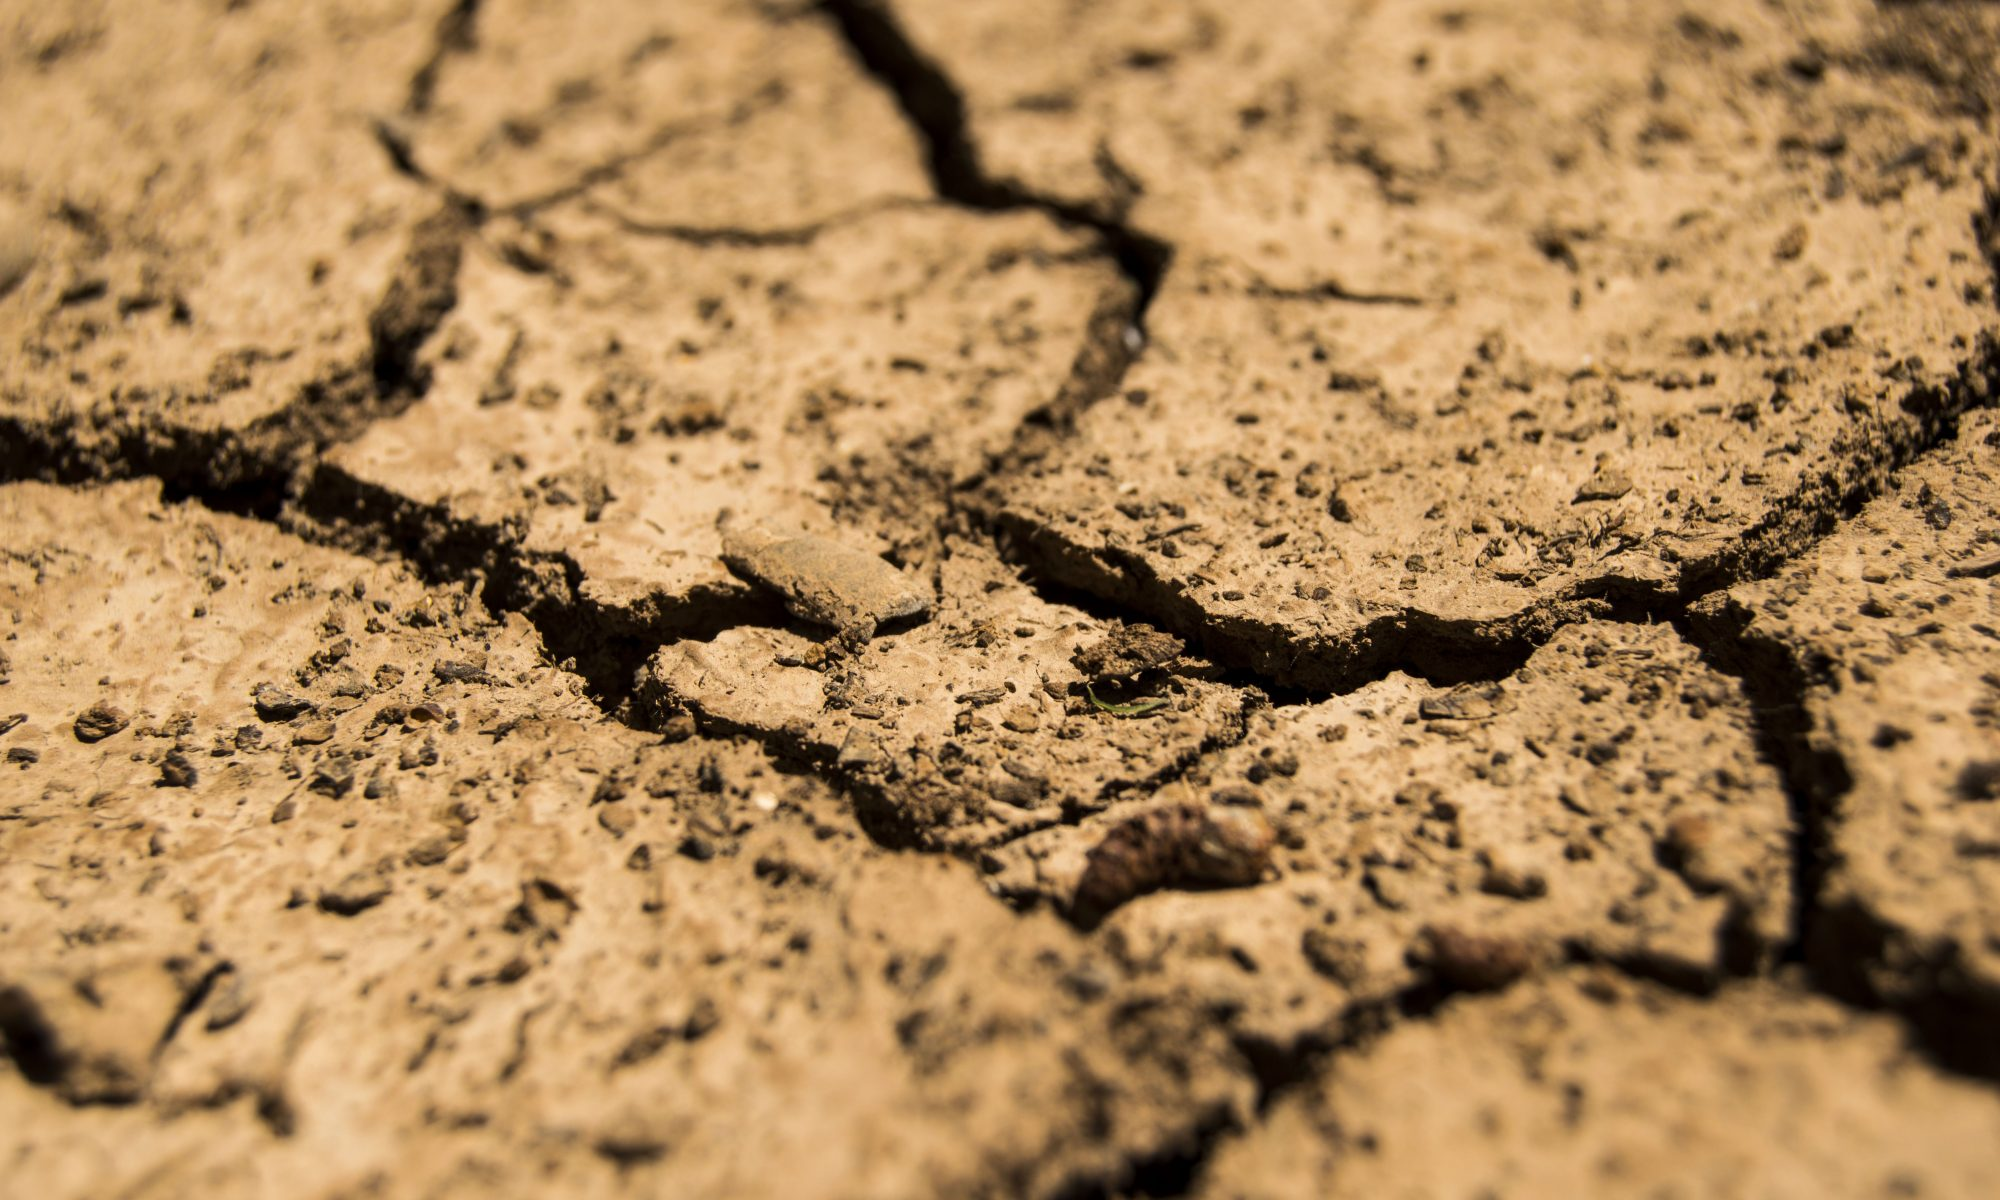 Close-up of cracked earth due to drought conditions